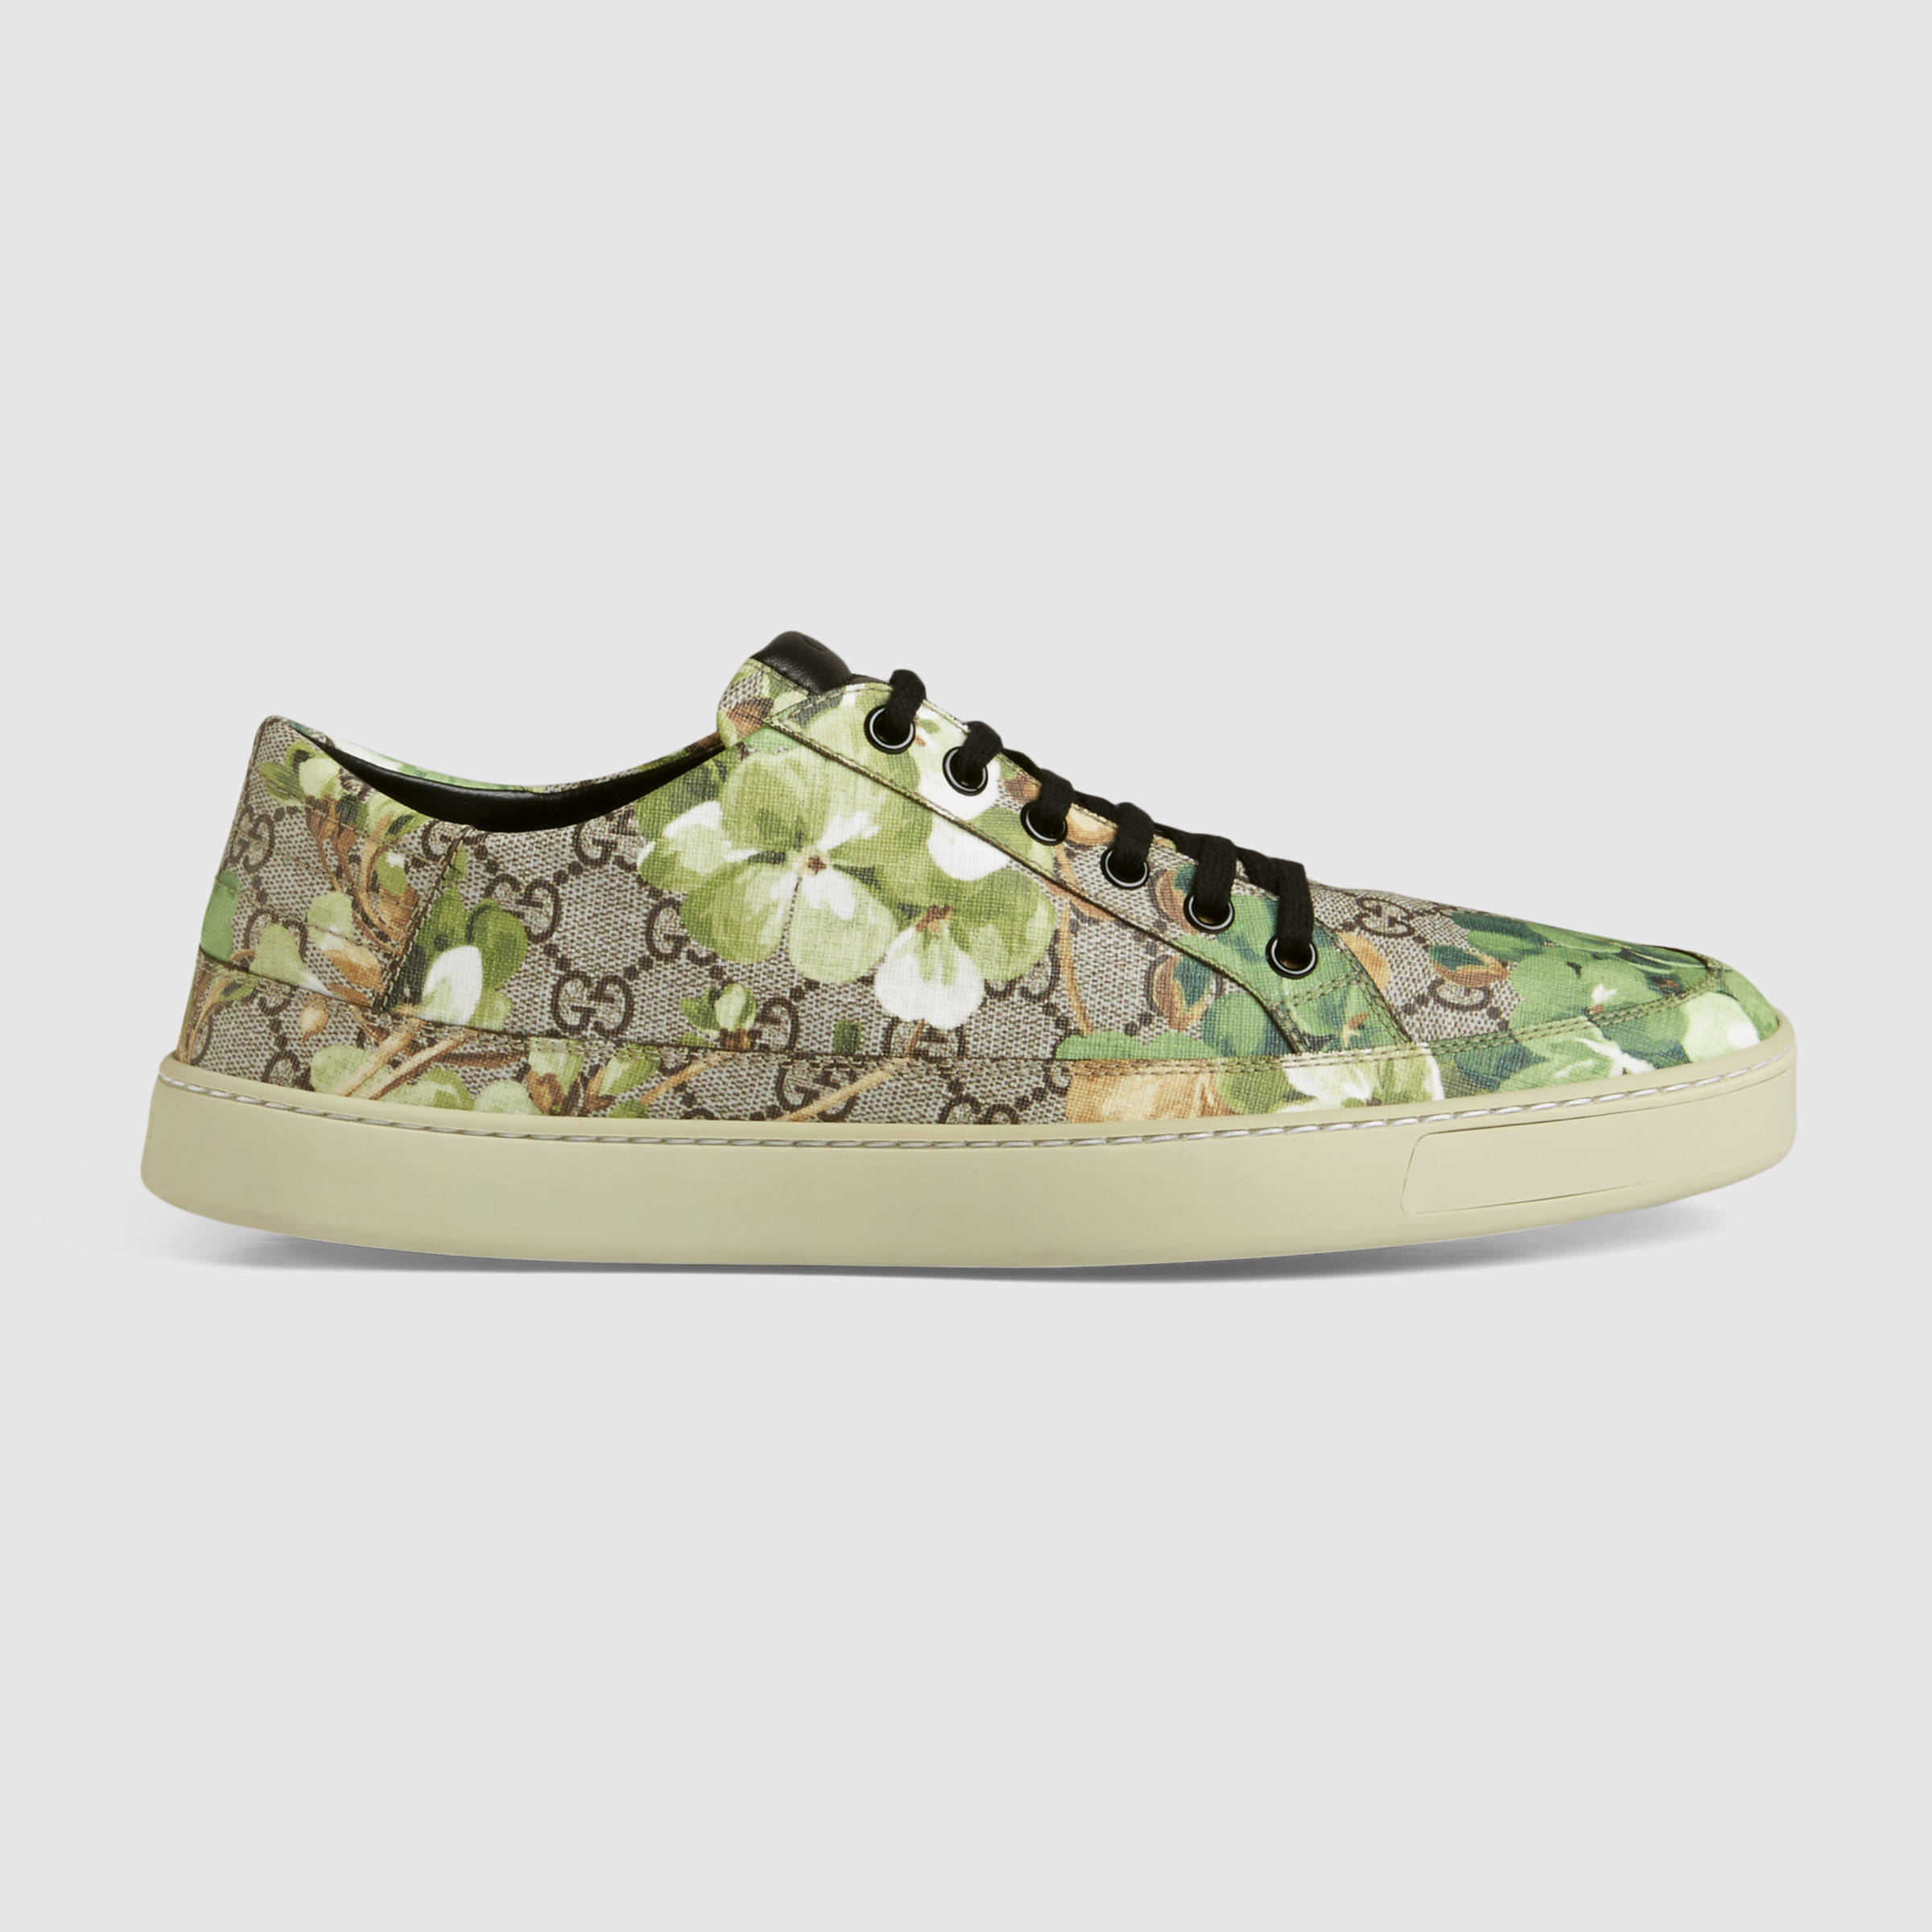 6a23aff3bd2 Gucci Blooms Print Low-top Sneaker for Men - Lyst